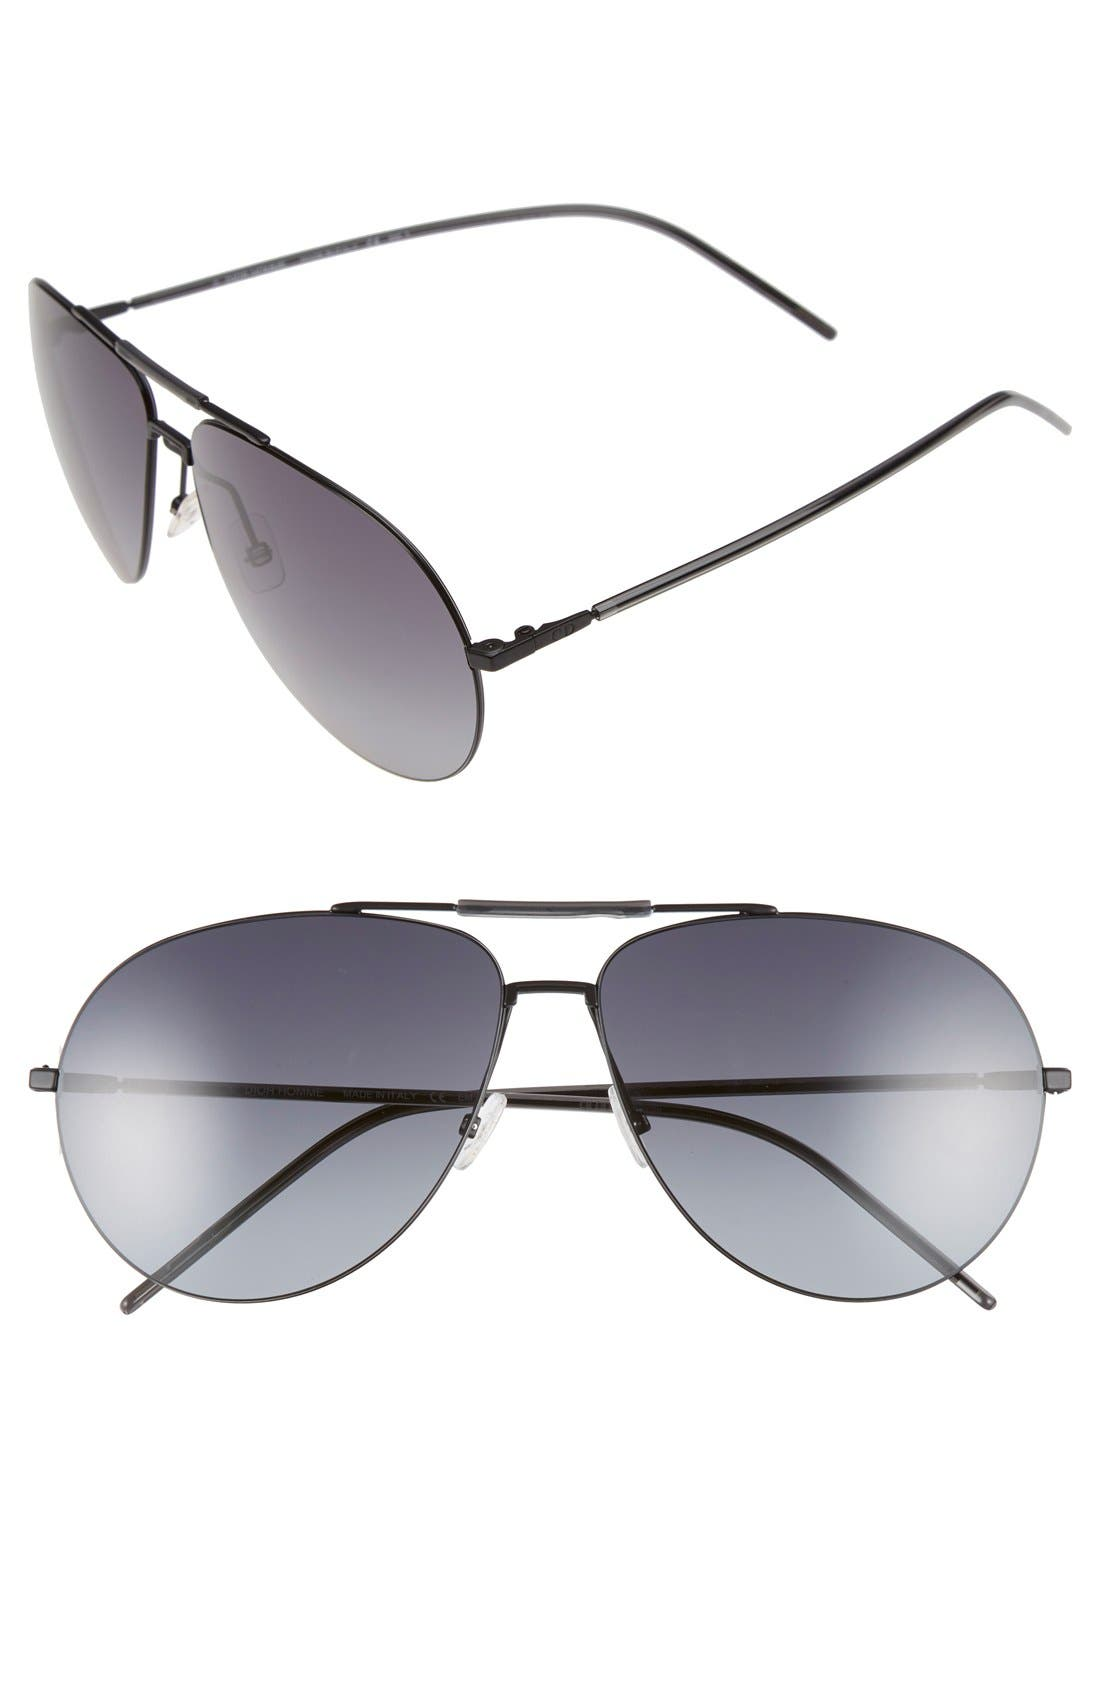 62mm Aviator Sunglasses,                             Main thumbnail 1, color,                             Black Grey/ Grey